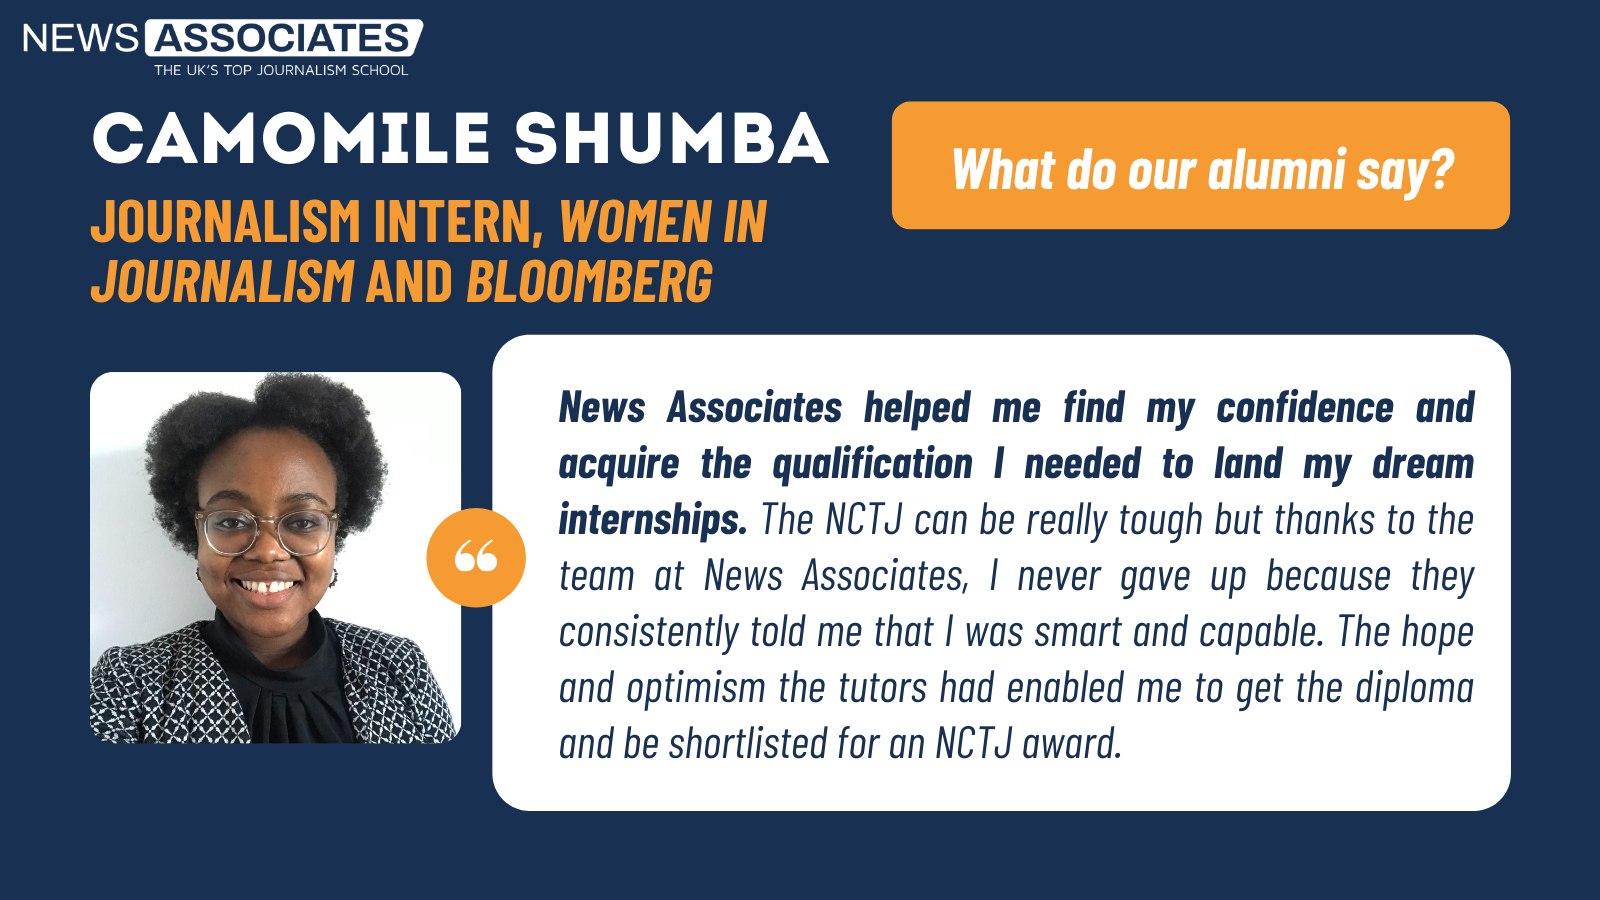 Journalism intern Camomile Shumba's testimonial: News Associates helped me find my confidence and acquire the qualification I needed to land my dream internships. The NCTJ can be really tough but thanks to the team at News Associates, I never gave up because they consistently told me that I was smart and capable. The hope and optimism the tutors had enabled me to get the diploma and be shortlisted for an NCTJ award.